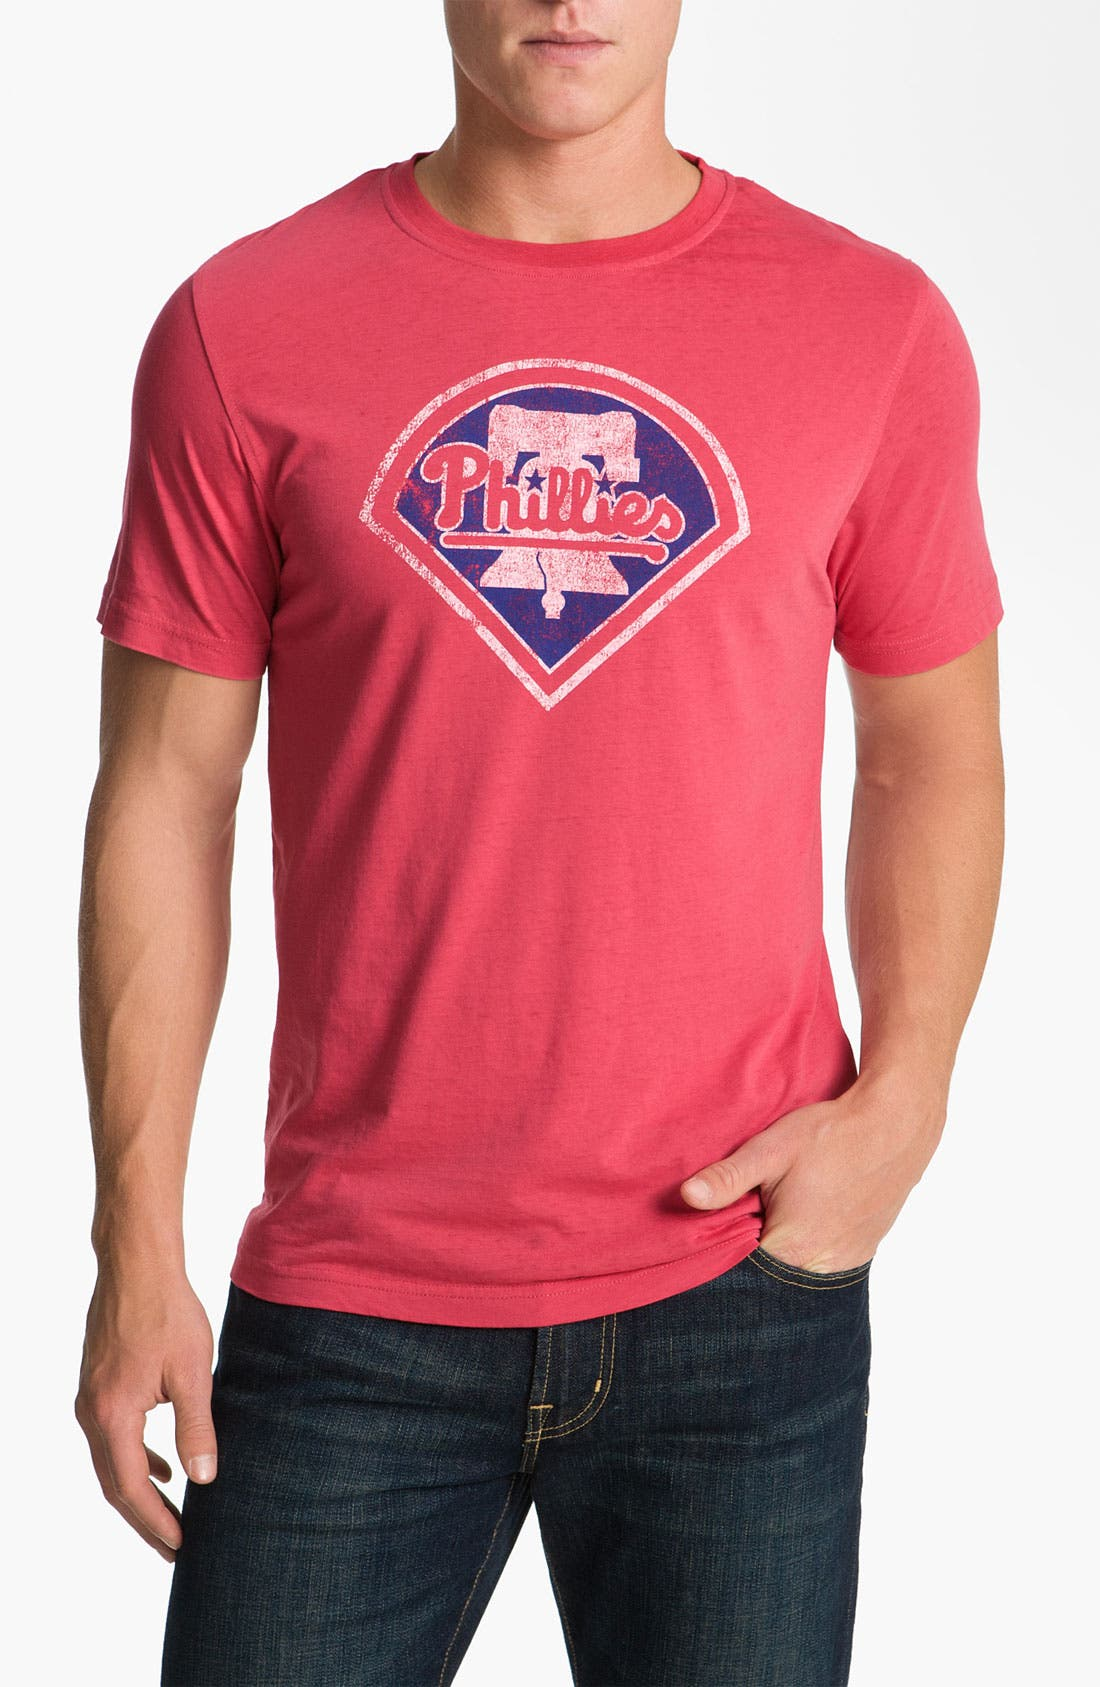 Alternate Image 1 Selected - Red Jacket 'Phillies - Greenwood' T-Shirt